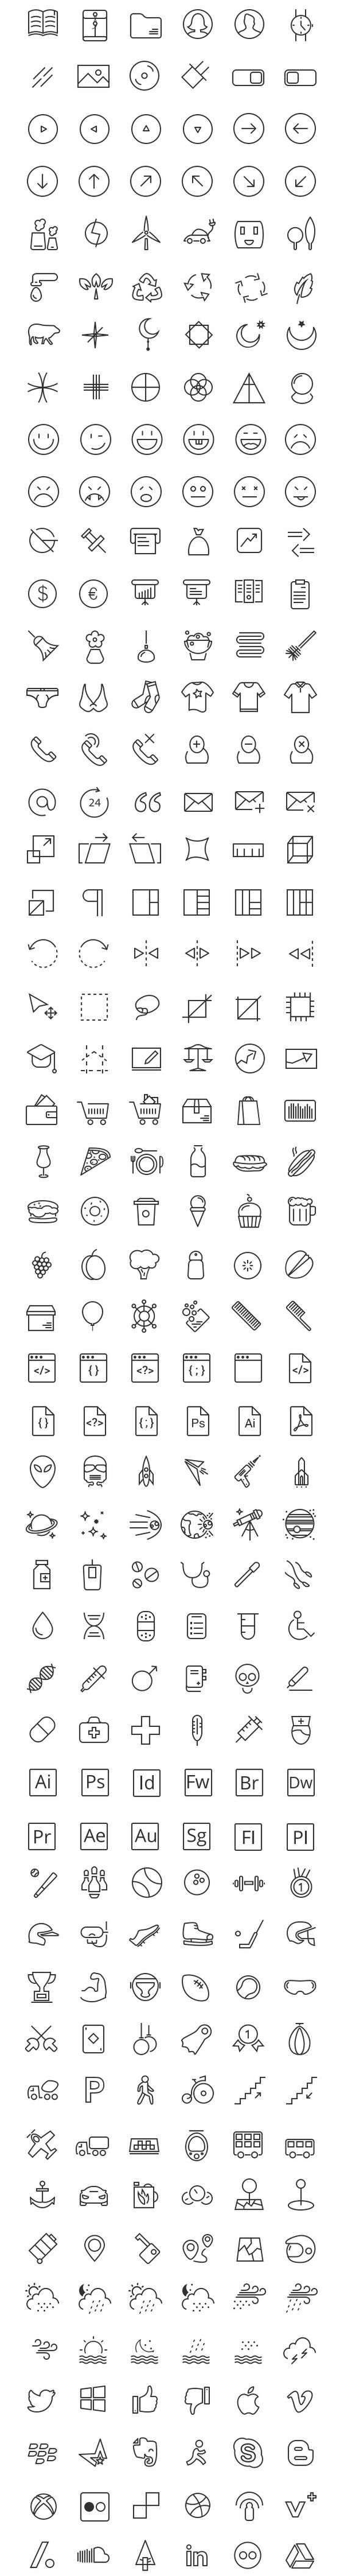 Free Download : RetinaIcon 300 Free Icons ( following Apple's iOS guidelines)